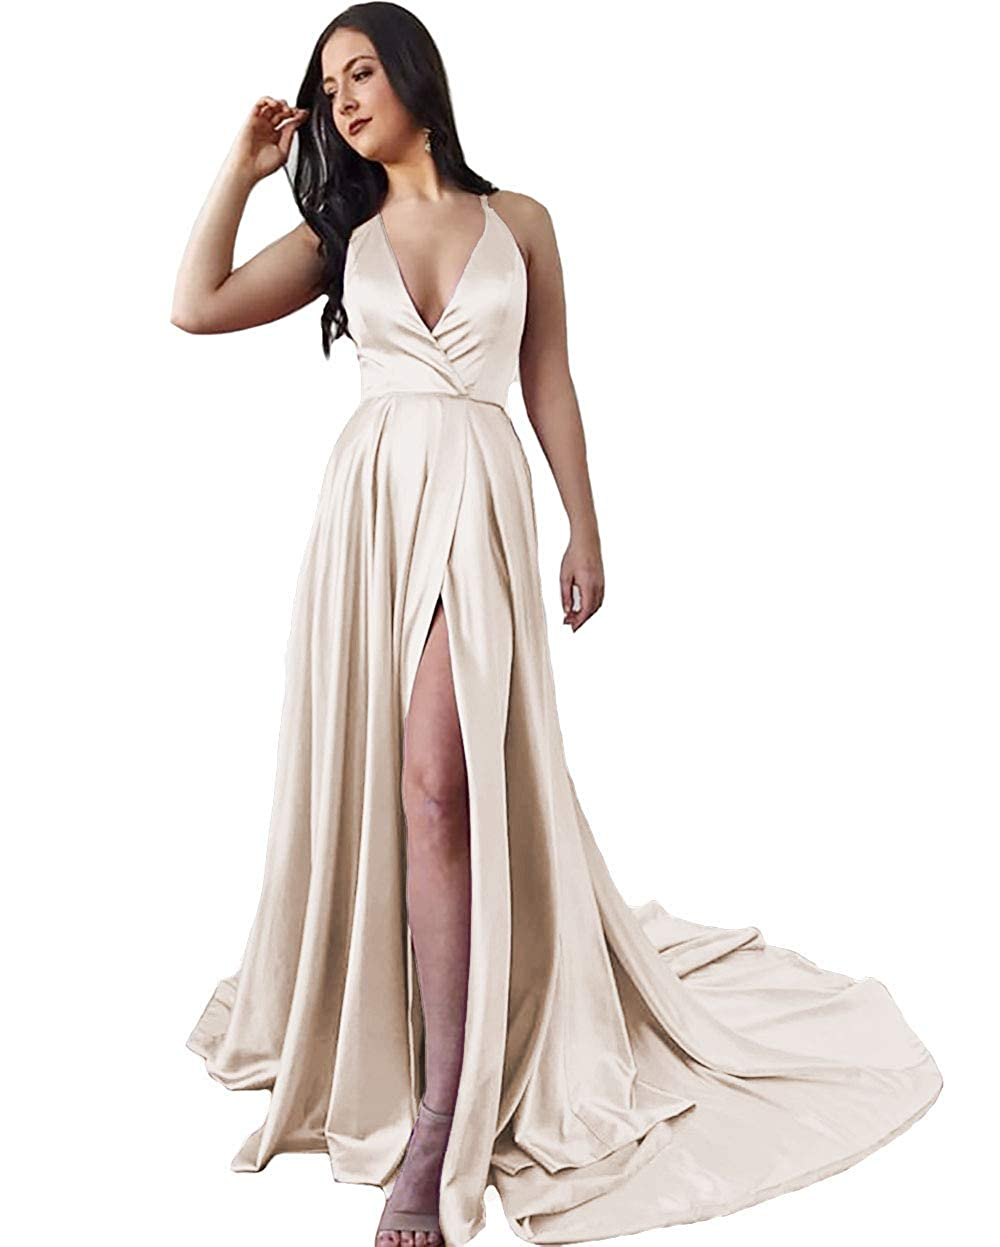 Champagne IVYPRECIOUS Women's Long Prom Dresses V Neck A Line with Side Split Evening Gowns